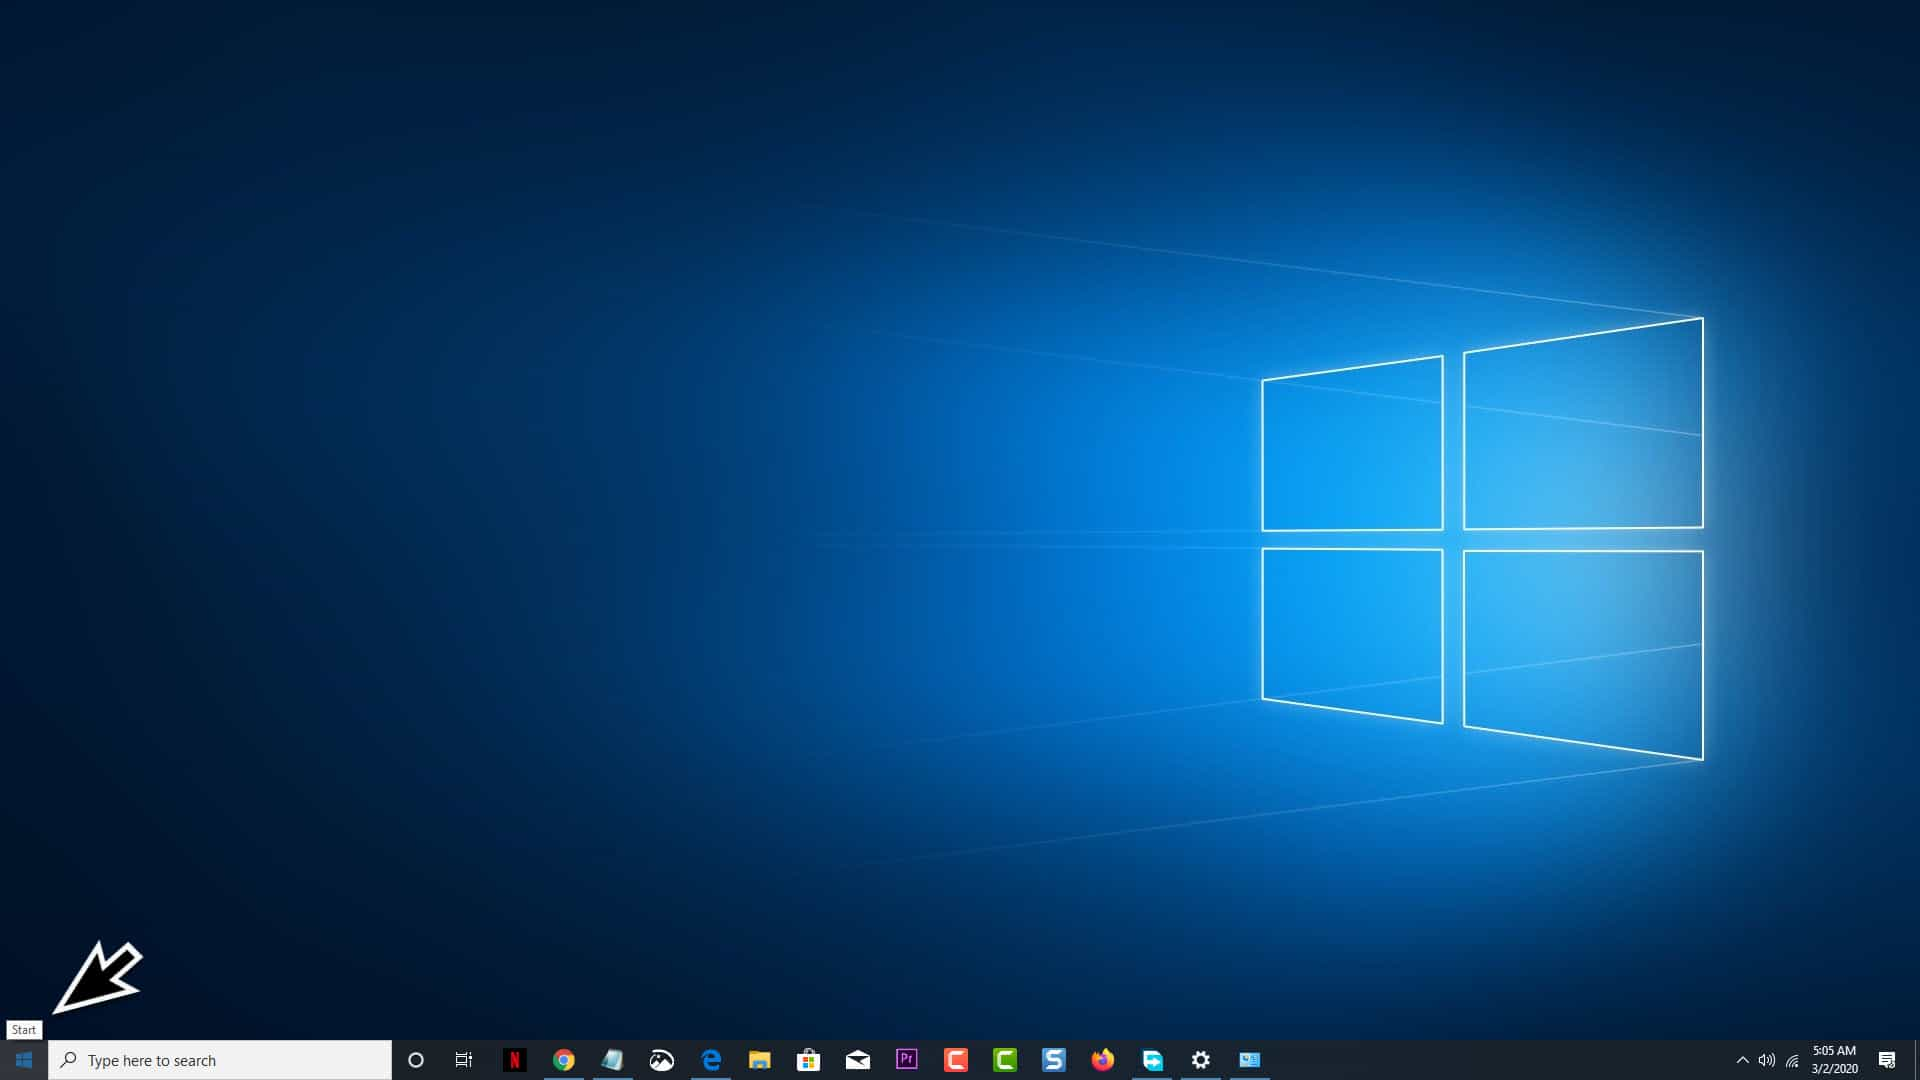 Make Windows 10 run faster by disabling animations